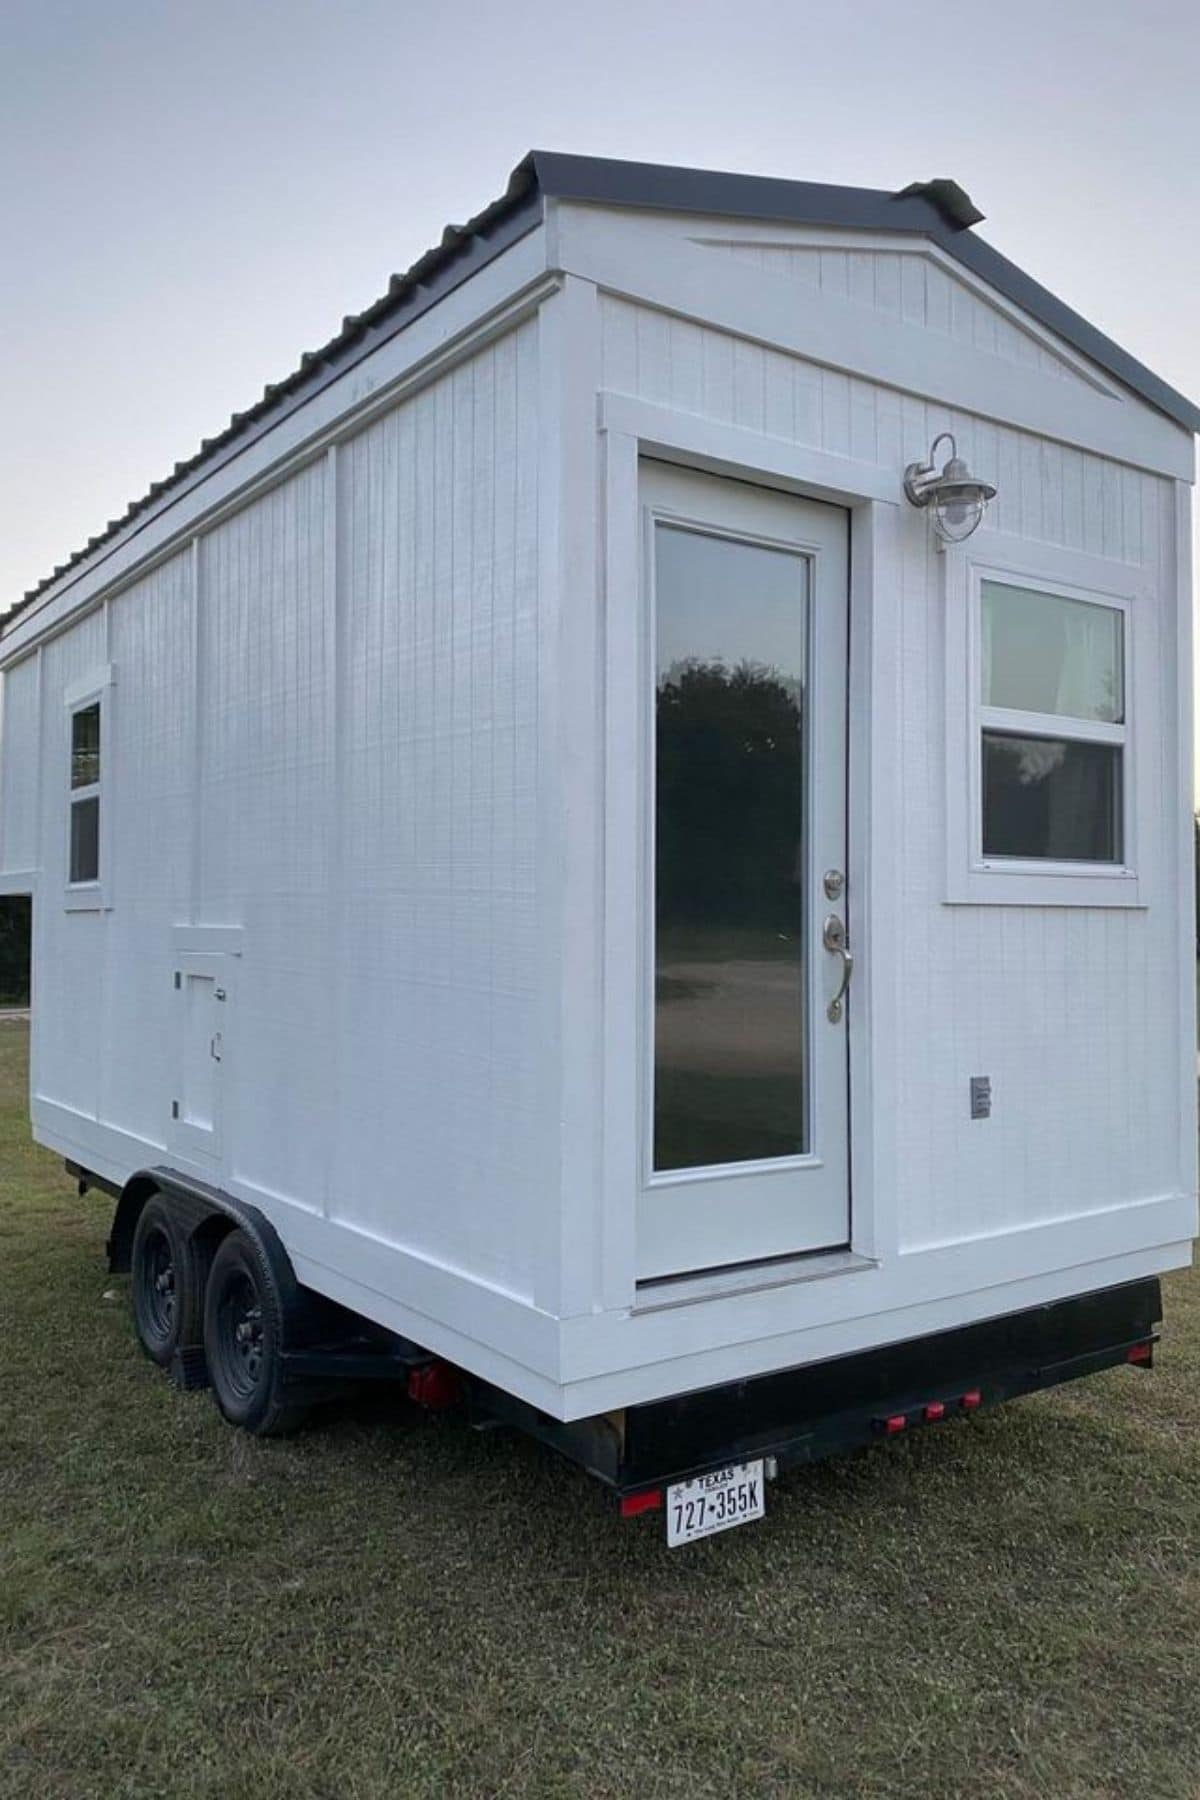 Front of tiny house on wheels showing white door